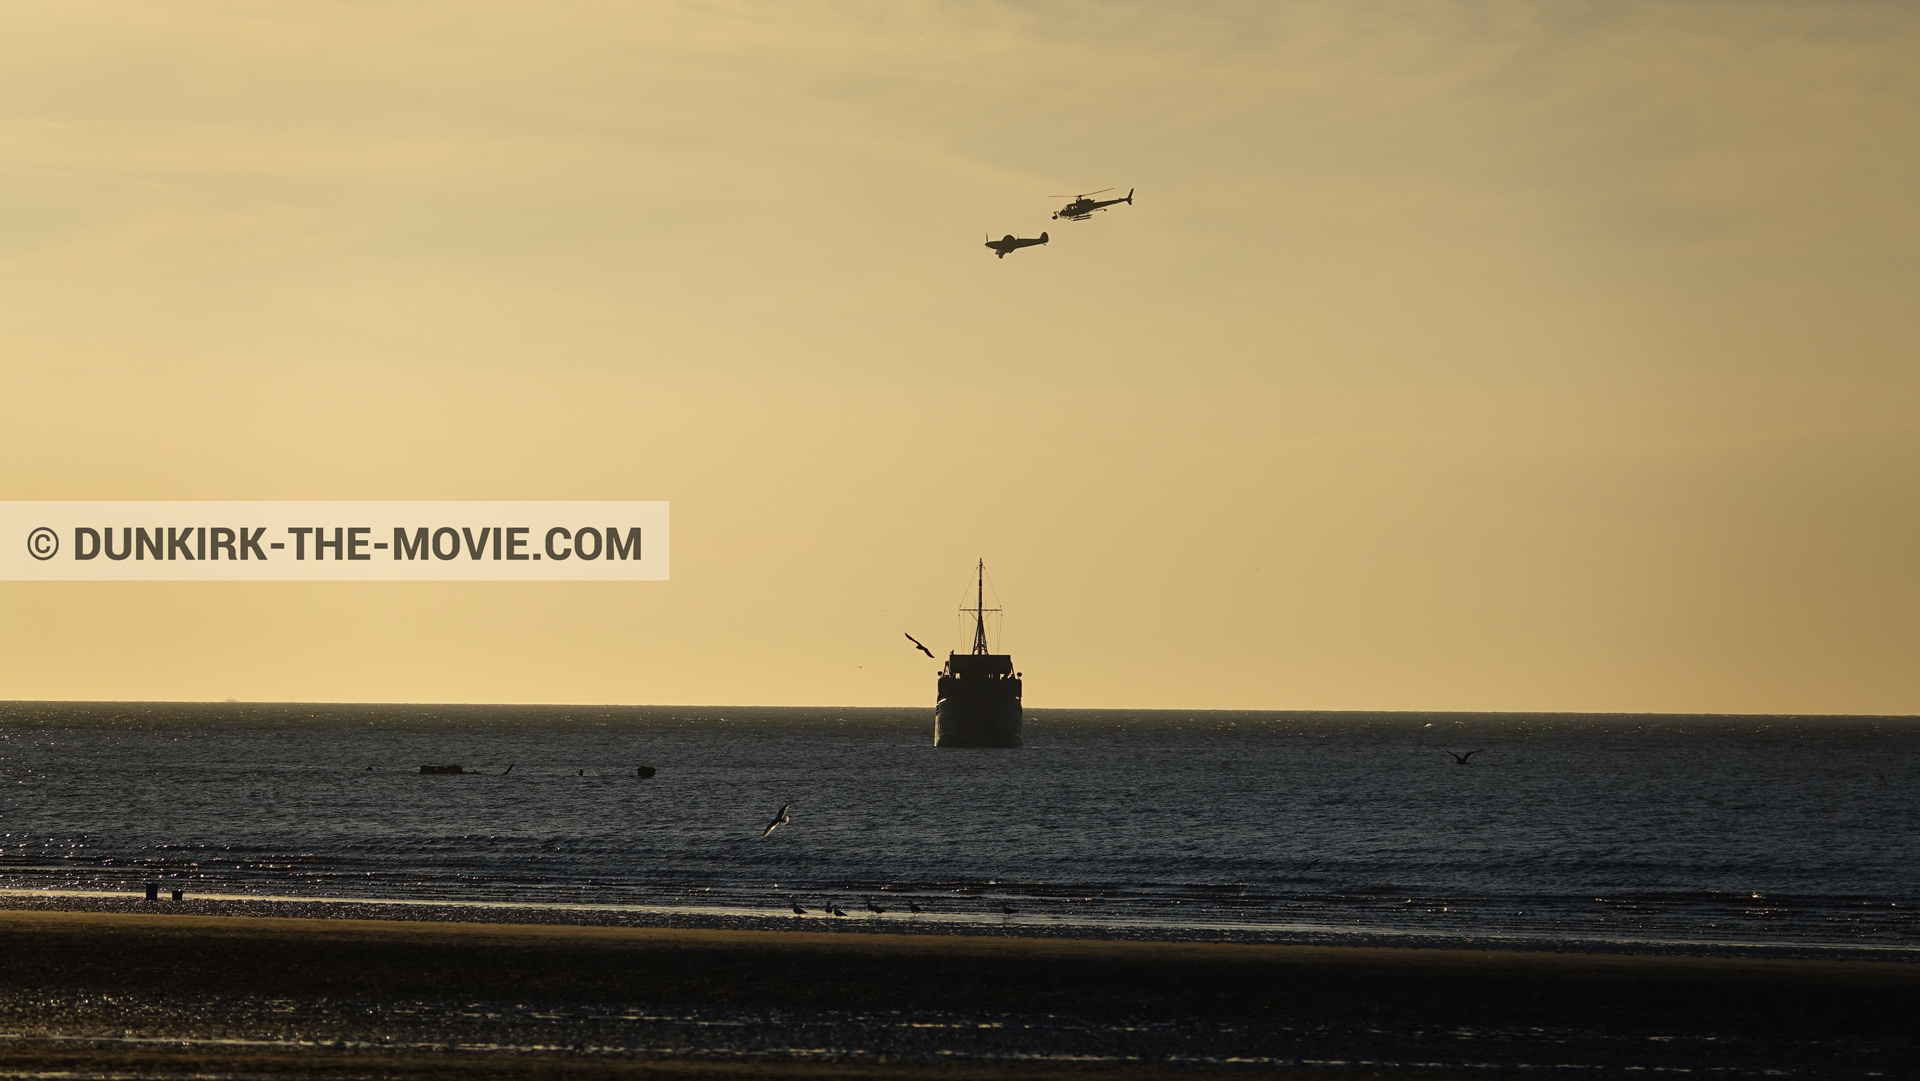 Picture with plane, boat, orange sky, helicopter camera,  from behind the scene of the Dunkirk movie by Nolan